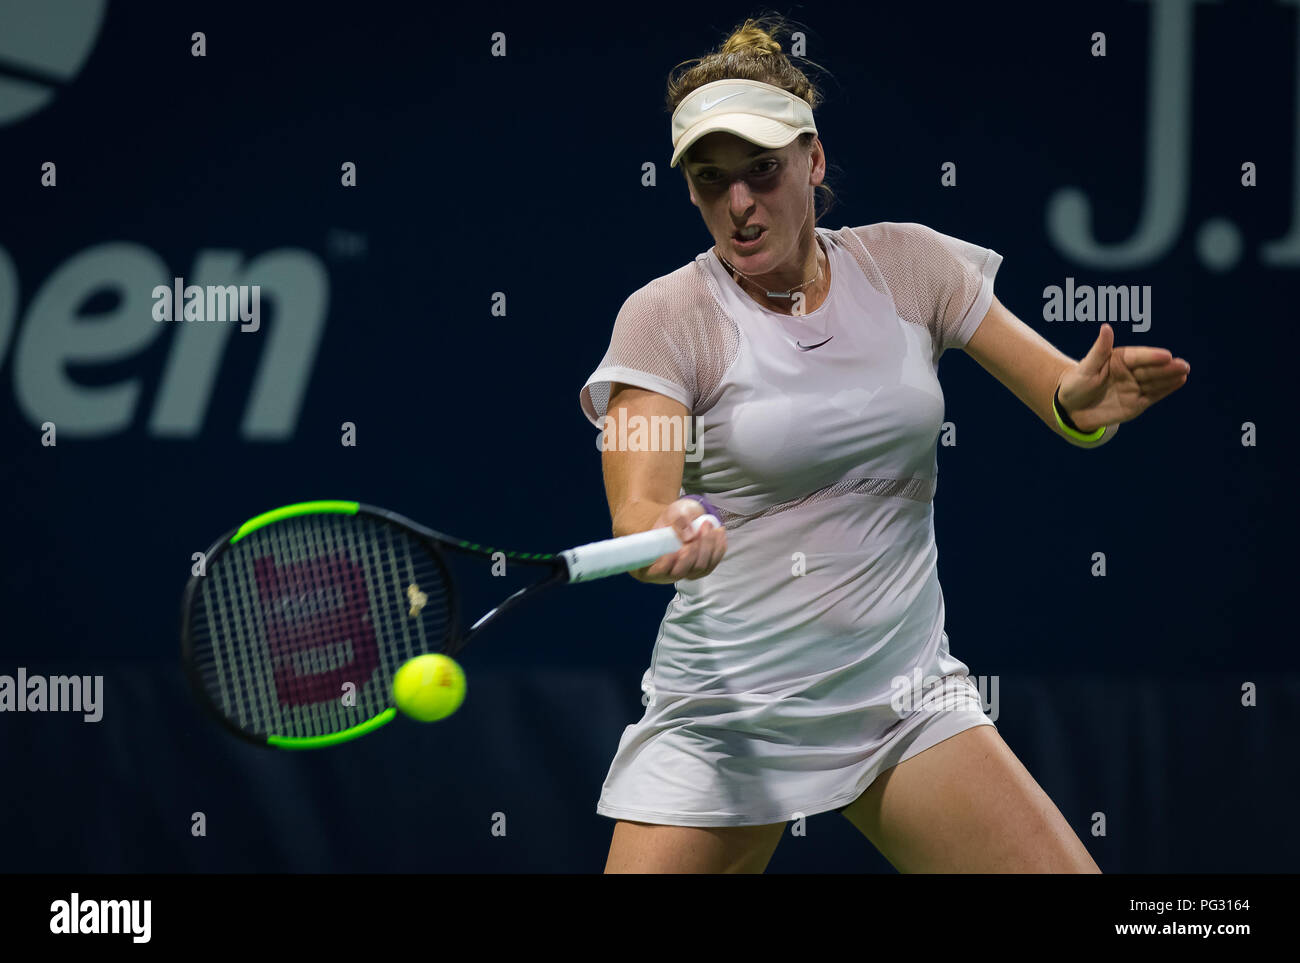 New York, USA. 24th Aug 2018. New York, USA. Madison Brengle of the United States in action during the first qualifications round at the 2018 US Open Grand Slam tennis tournament. New York, USA. August 22th 2018. 22nd Aug, 2018. Credit: AFP7/ZUMA Wire/Alamy Live News Stock Photo